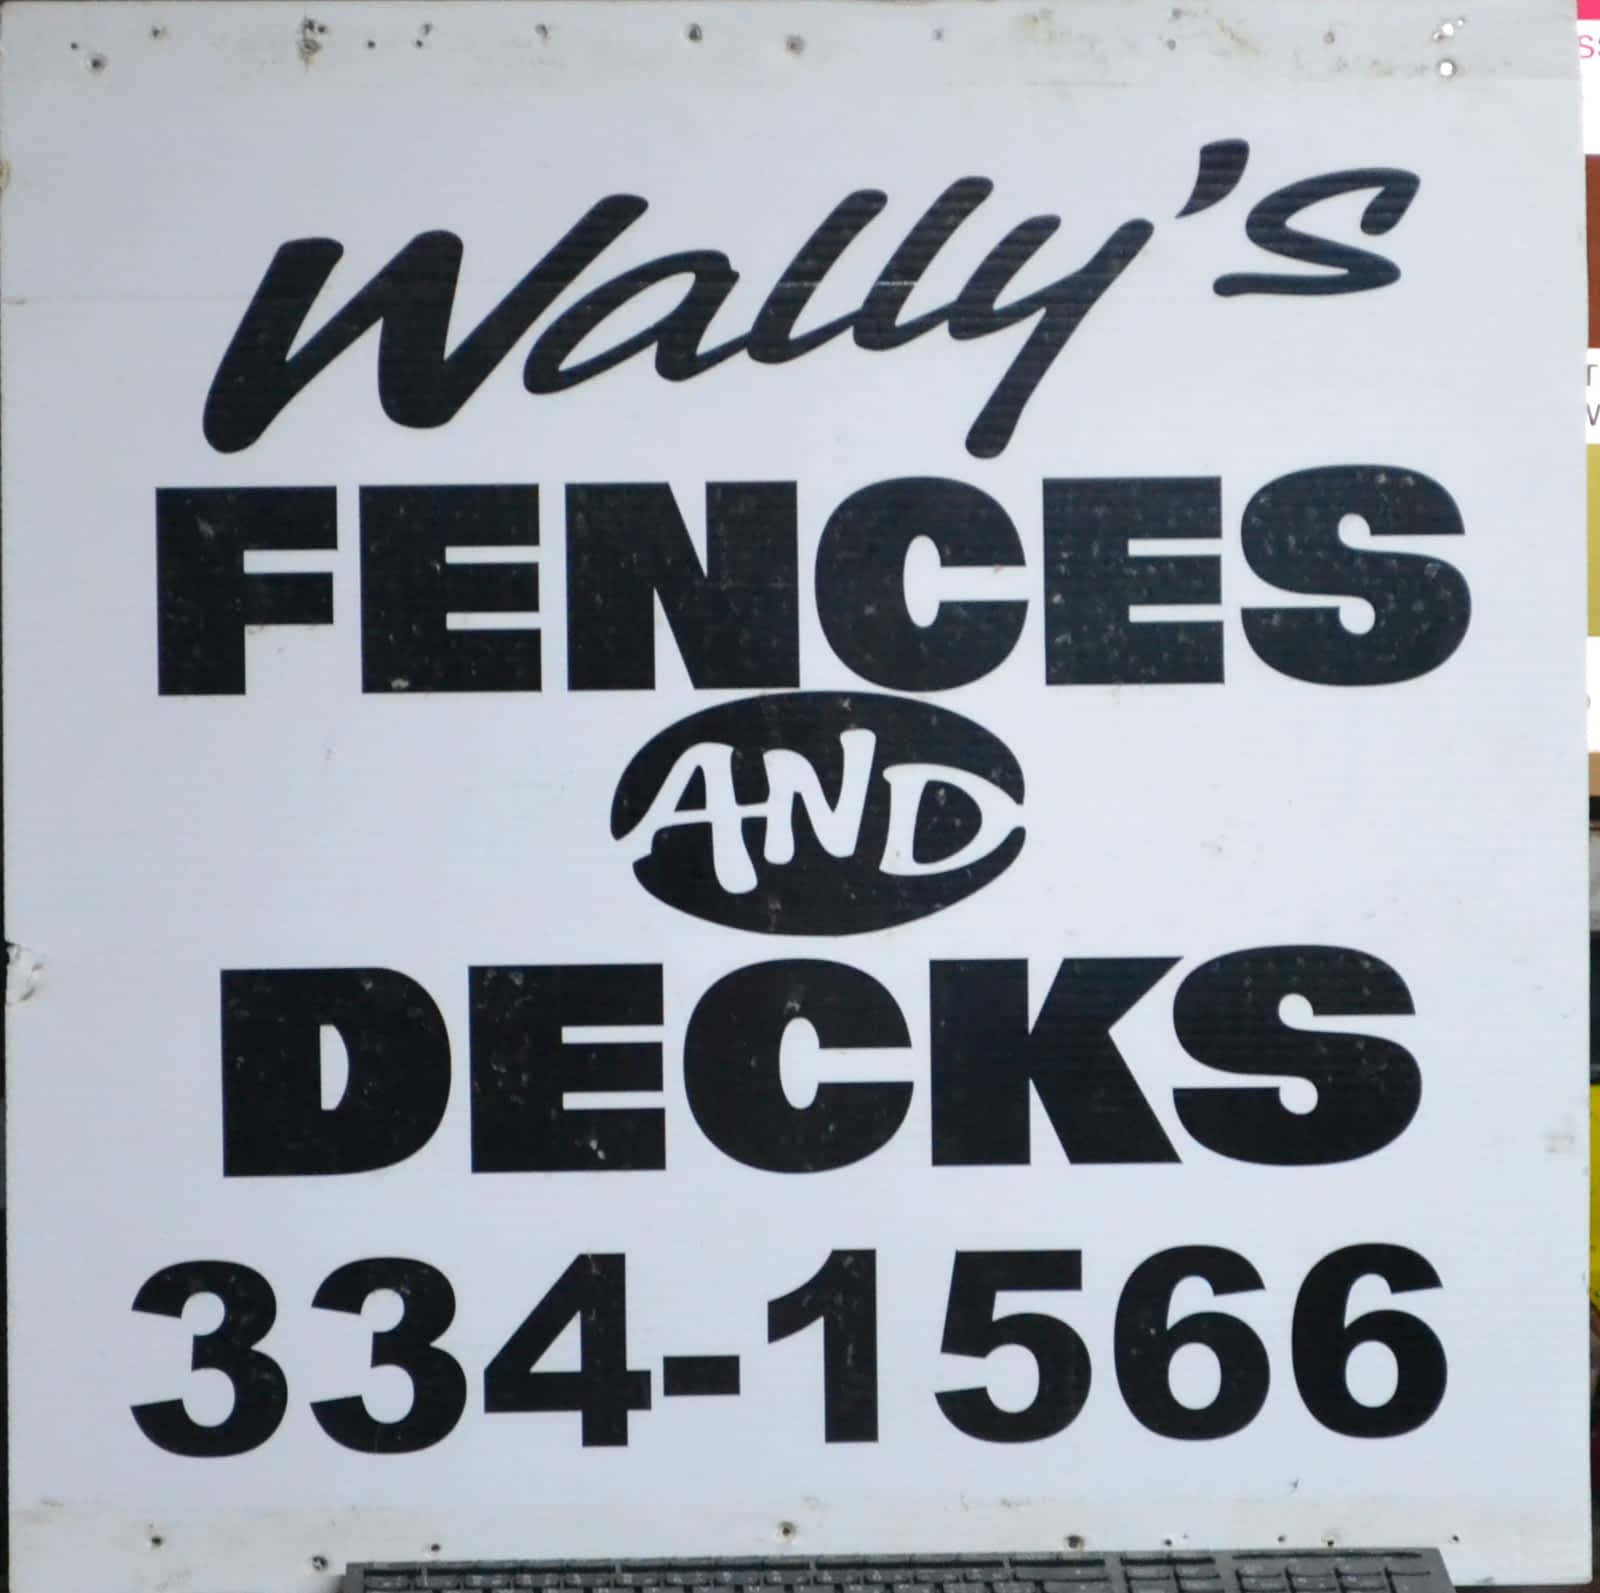 Wally's Fences and Decks